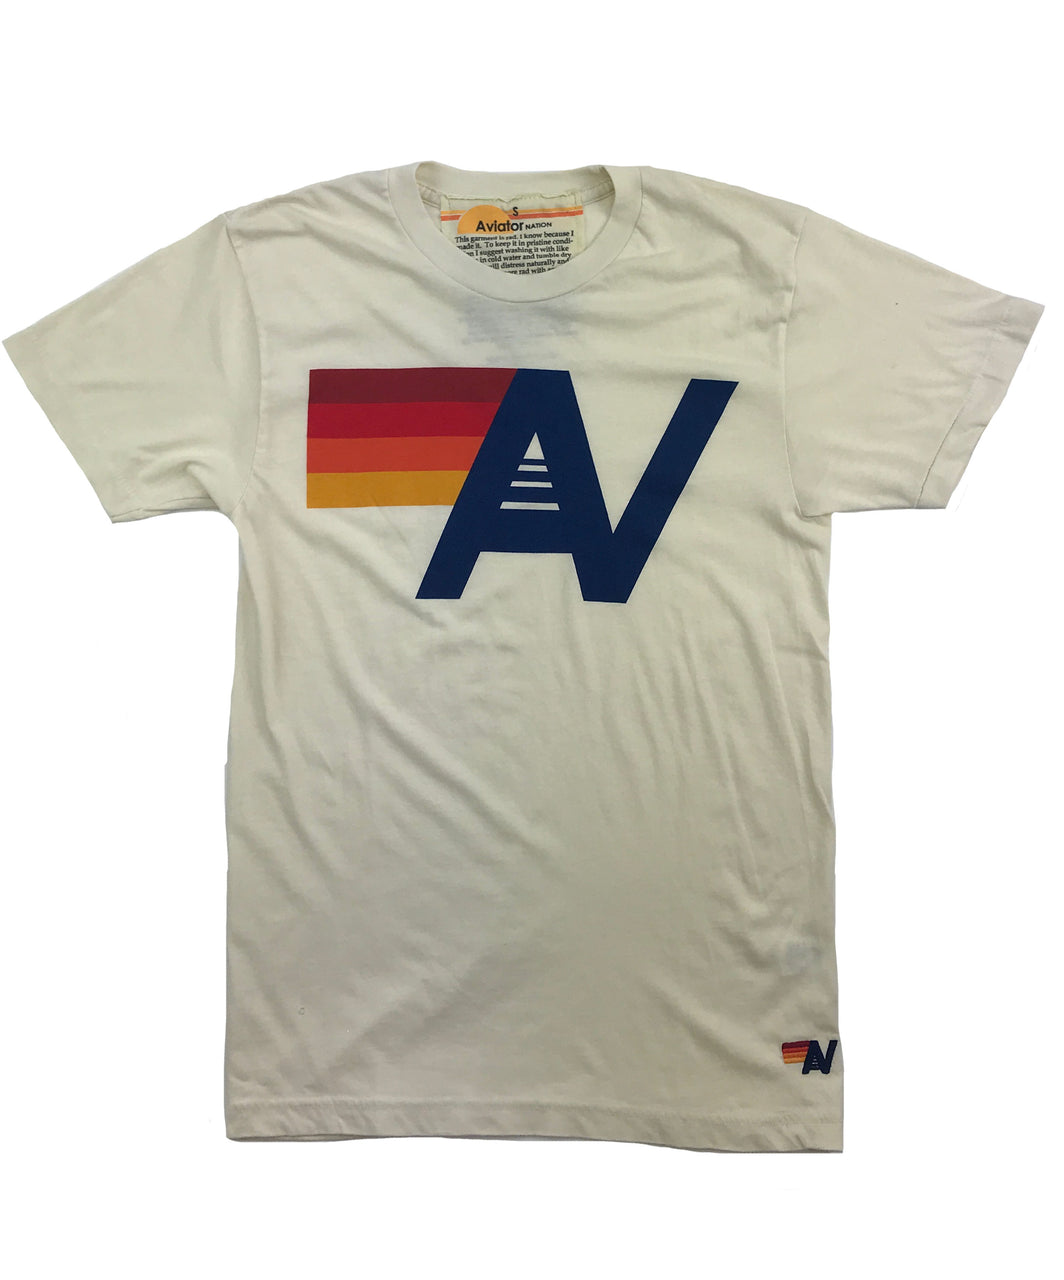 Aviator Nation Logo Crew Tee Vintage White